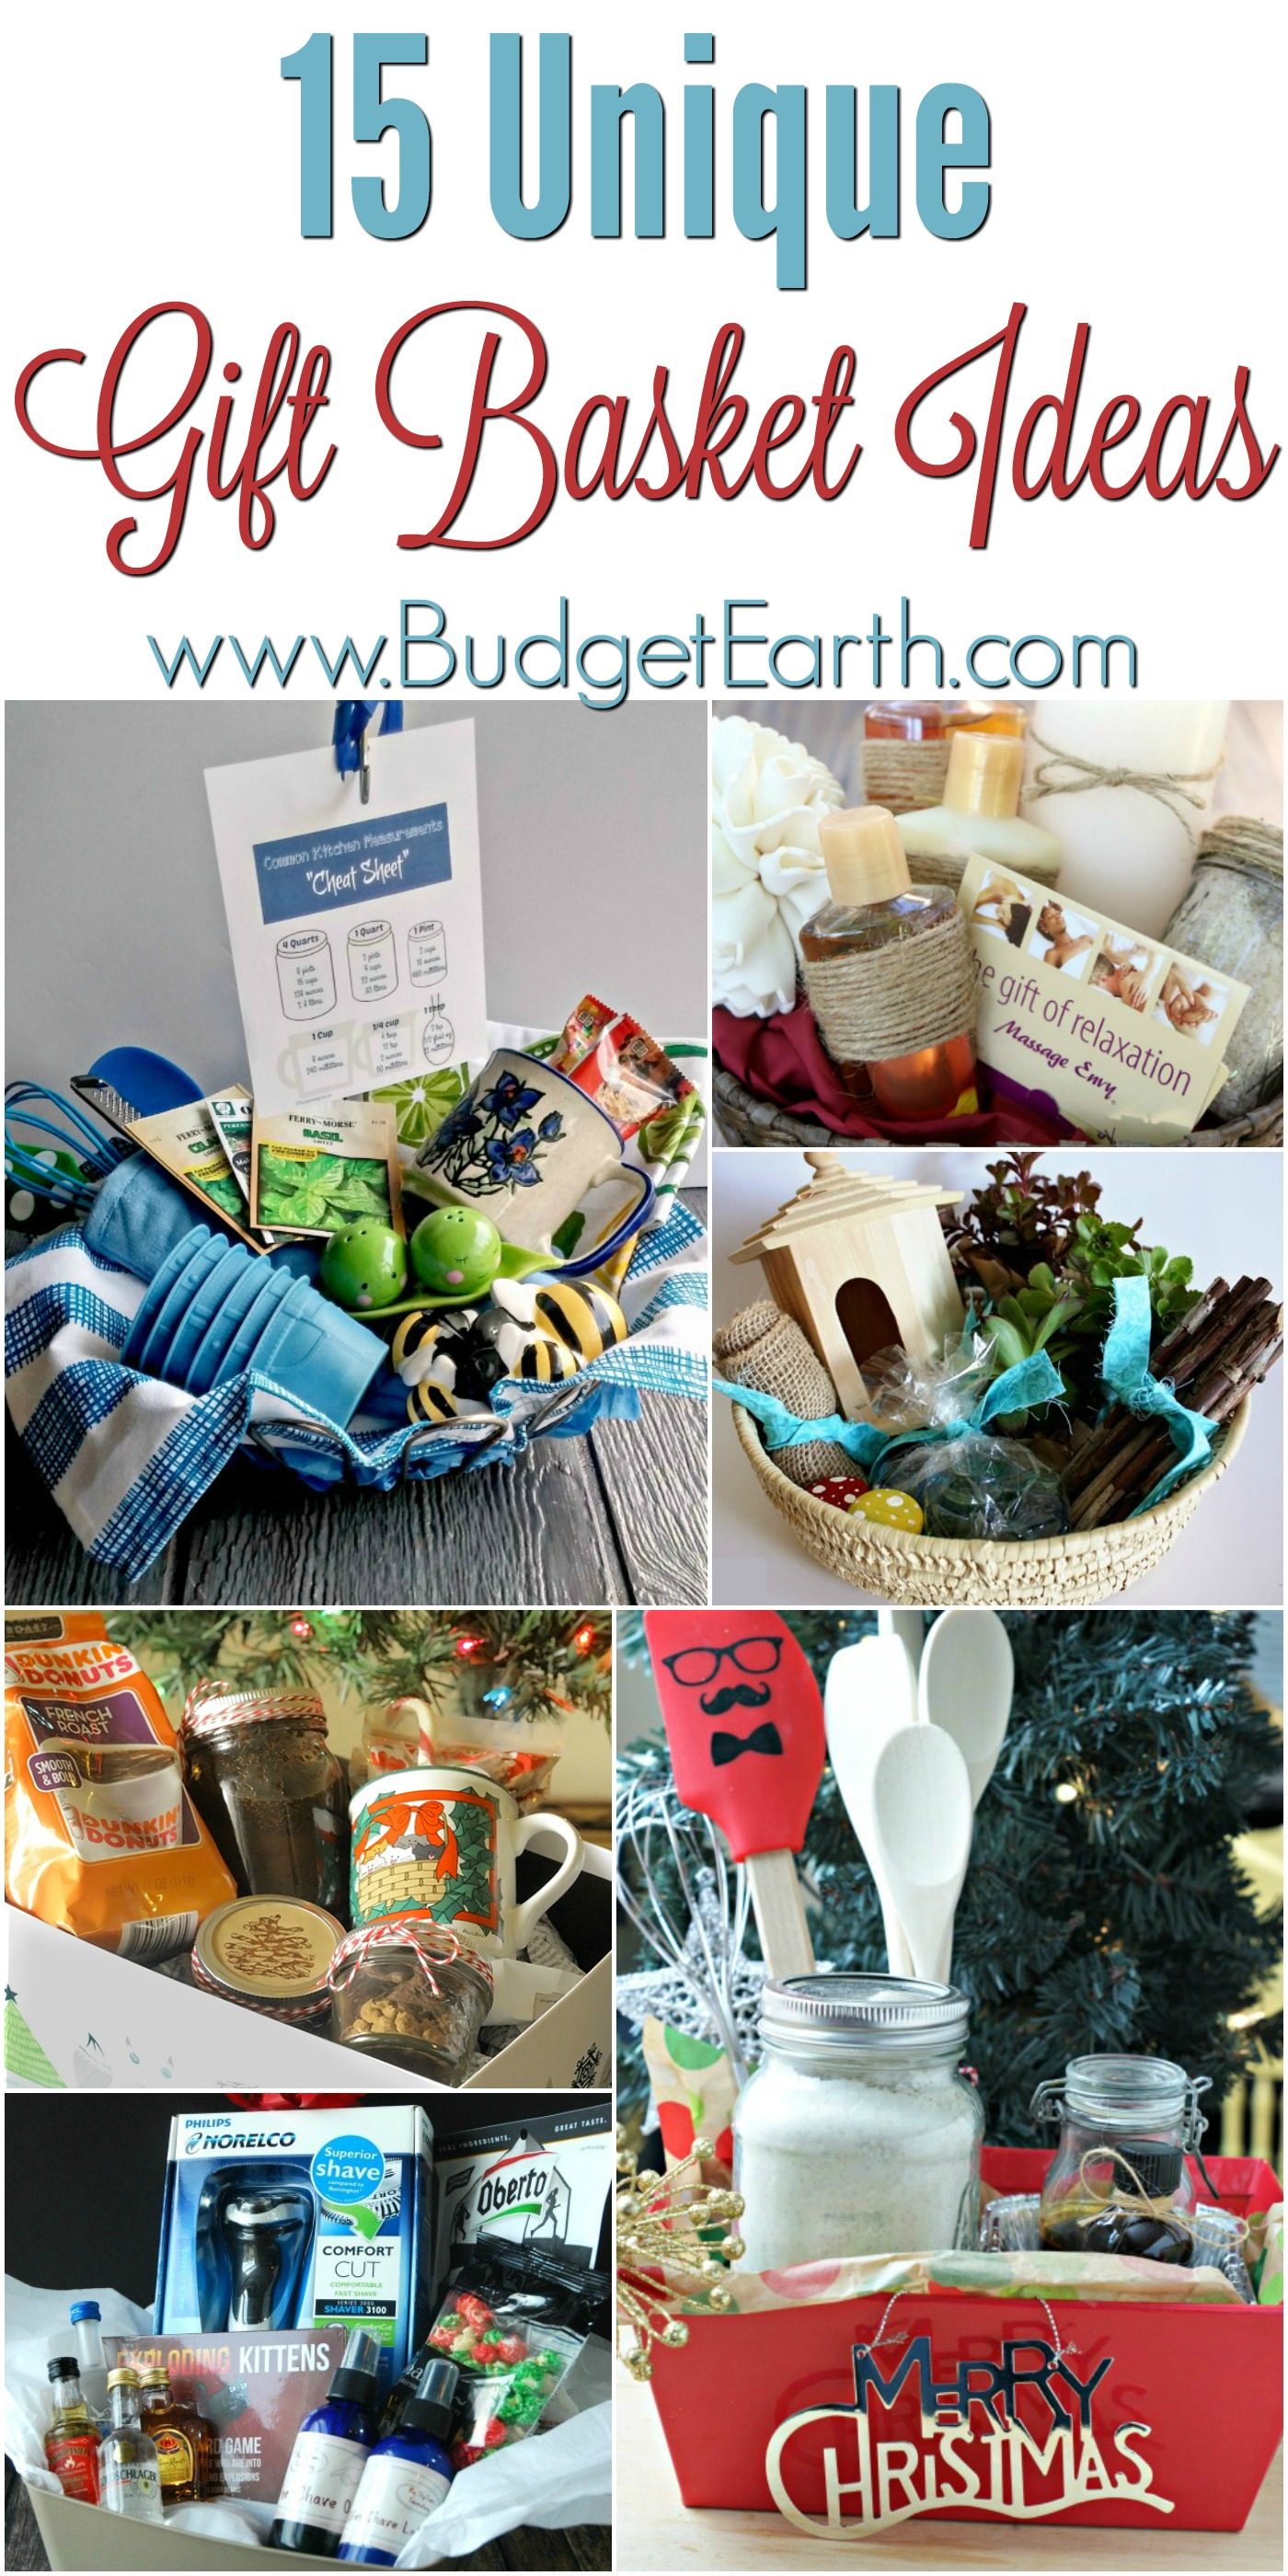 Looking for some unique gift ideas? Check out our list of 15 Unique Gift Basket Ideas here!